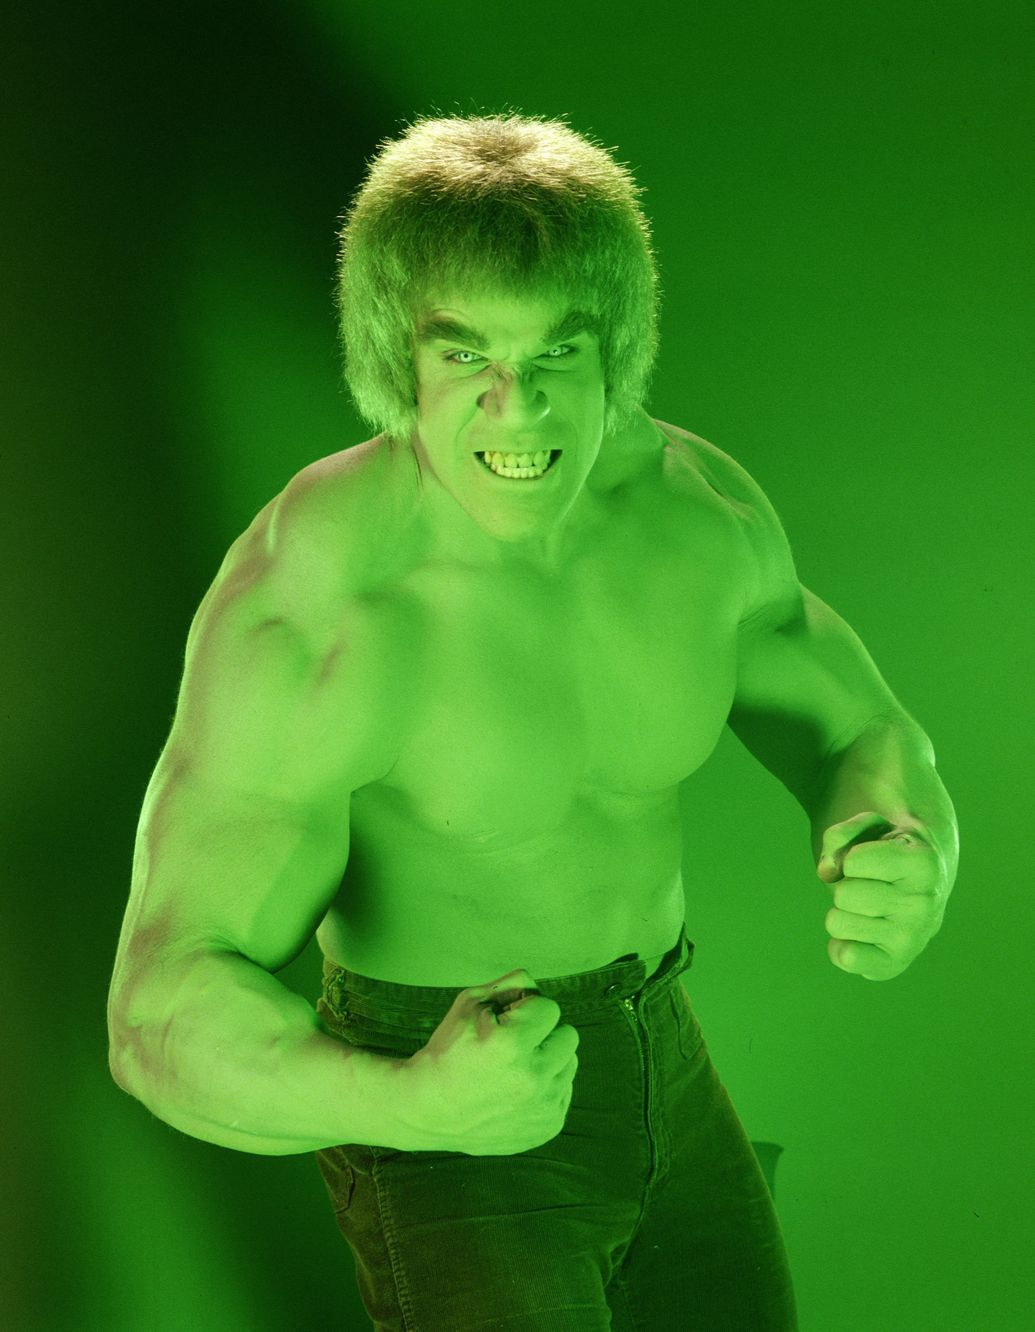 Lou Ferrigno as The Incredible Hulk (Marvel Comics). | Hulk tv